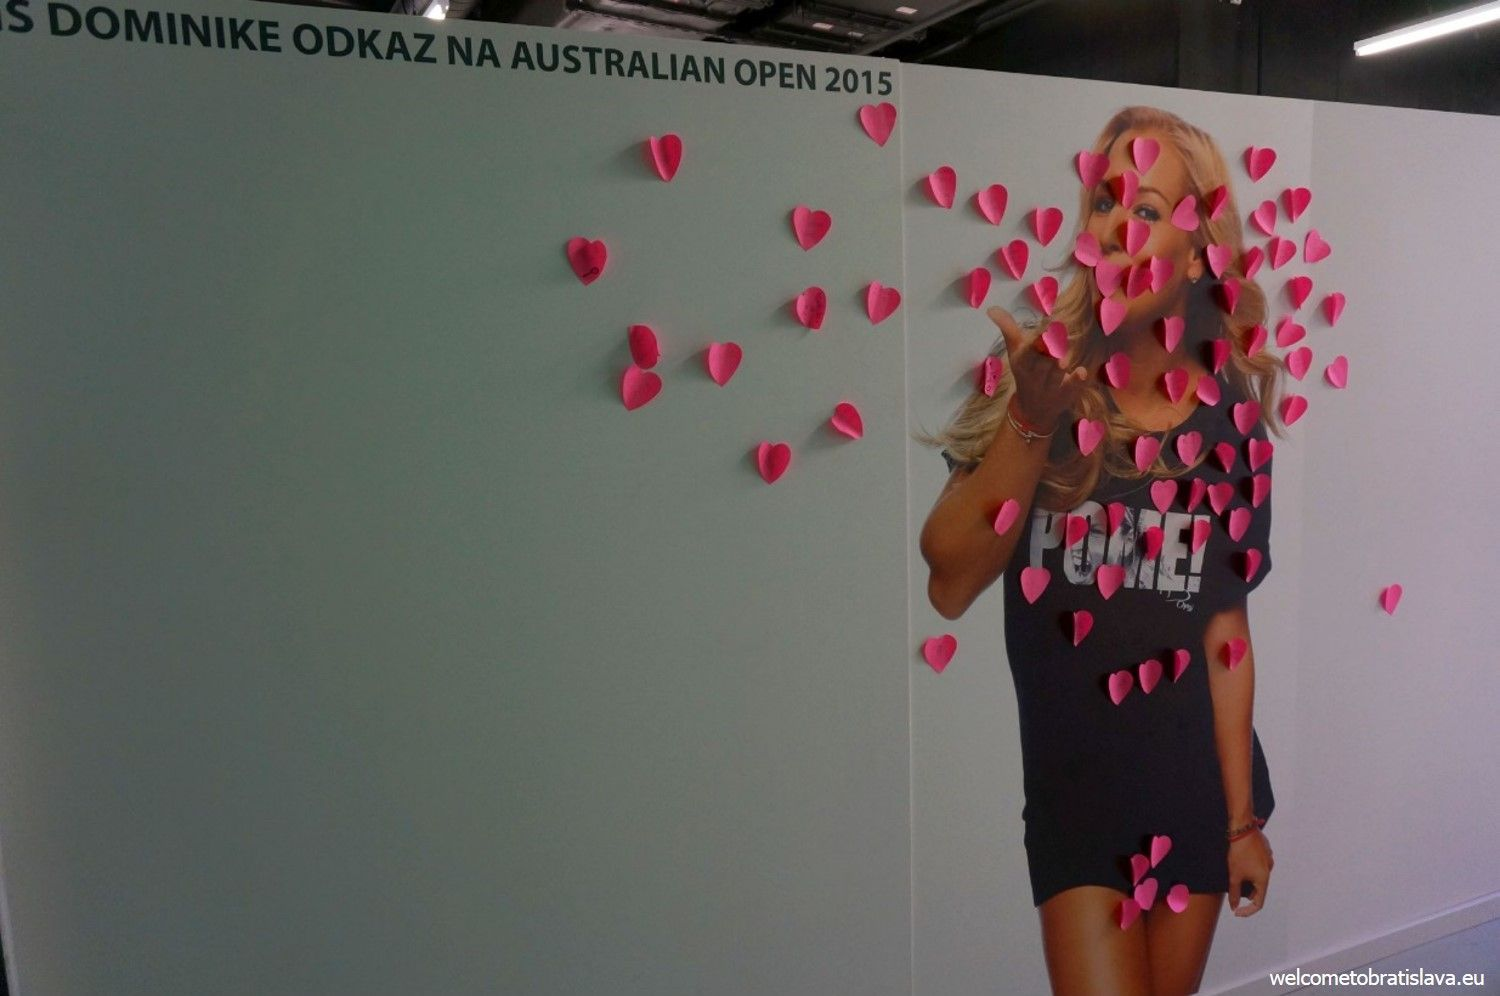 If you are one of Dominika's fans, you can leave her a message on this big poster at the end of the exhibition